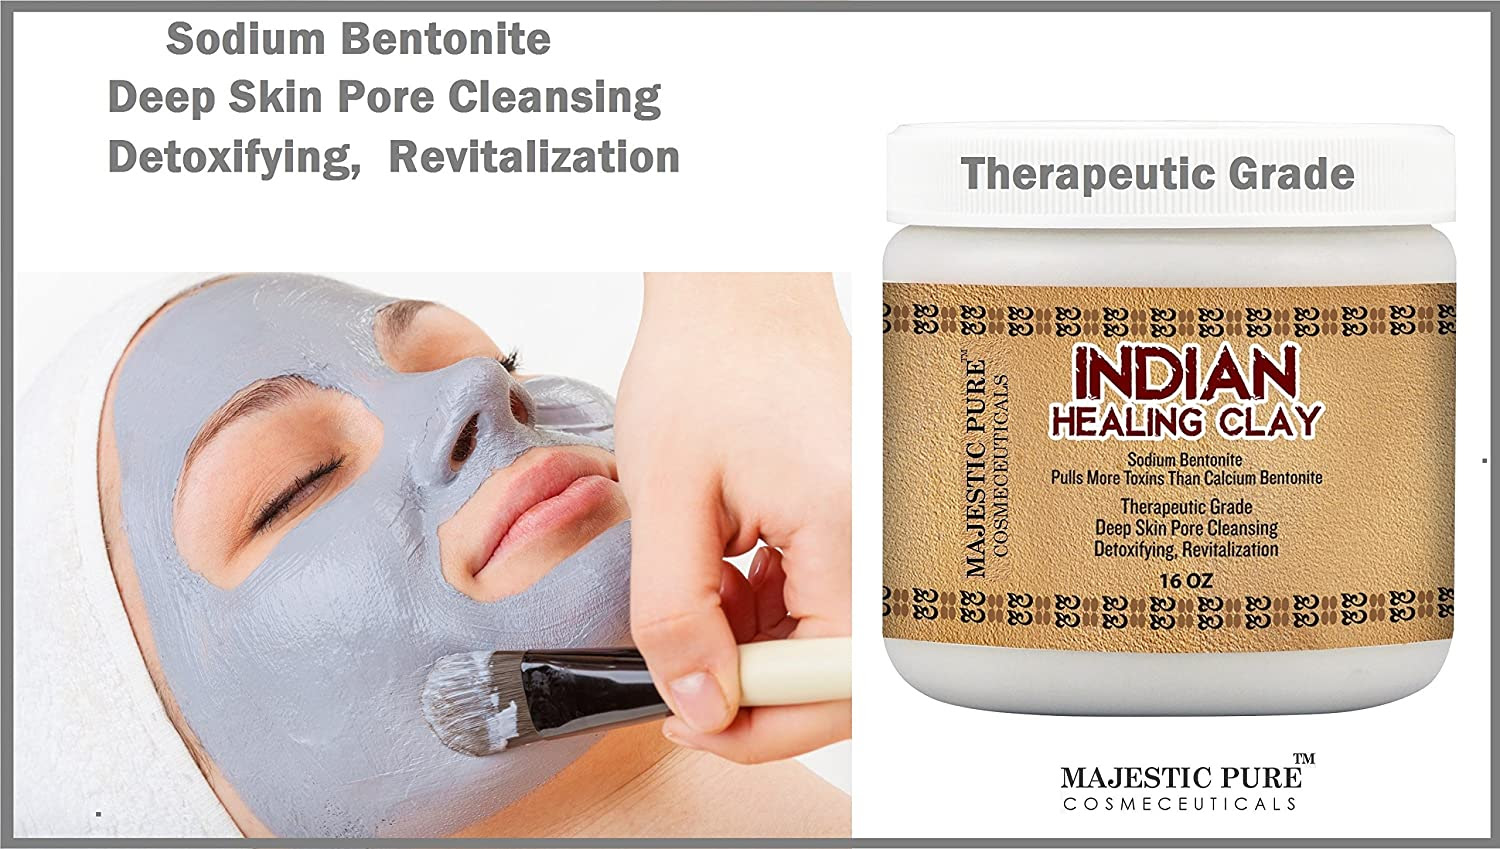 http://www.amazon.com/Bentonite-Clay-Therapeutic-Detoxifying-Revitalization/dp/B00Q96XGUU/ref=sr_1_1?ie=UTF8&qid=1423756431&sr=8-1&keywords=bentonite-clay-therapeutic-detoxifying-revitalization